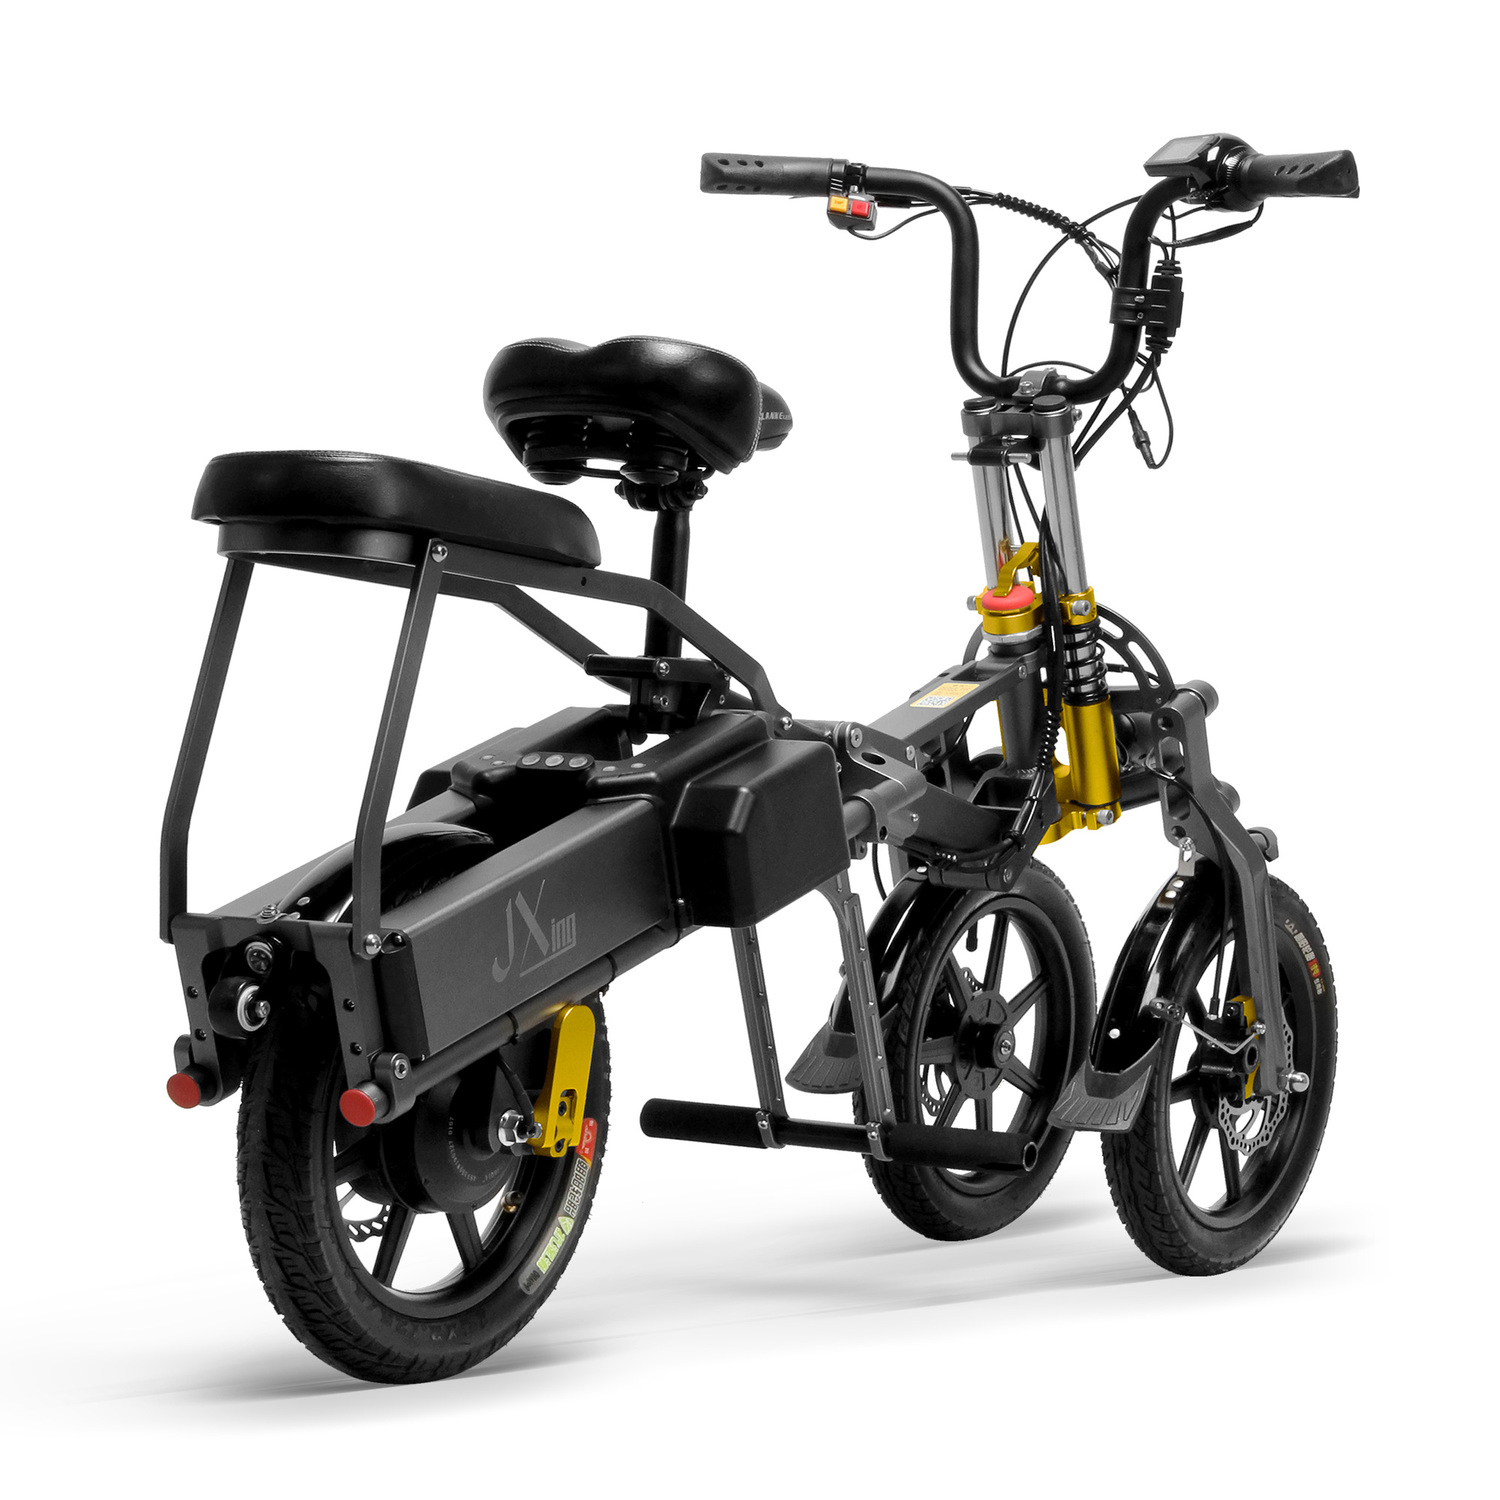 JX003 Chinese 48V 350W folding scooter electric tricycle 4